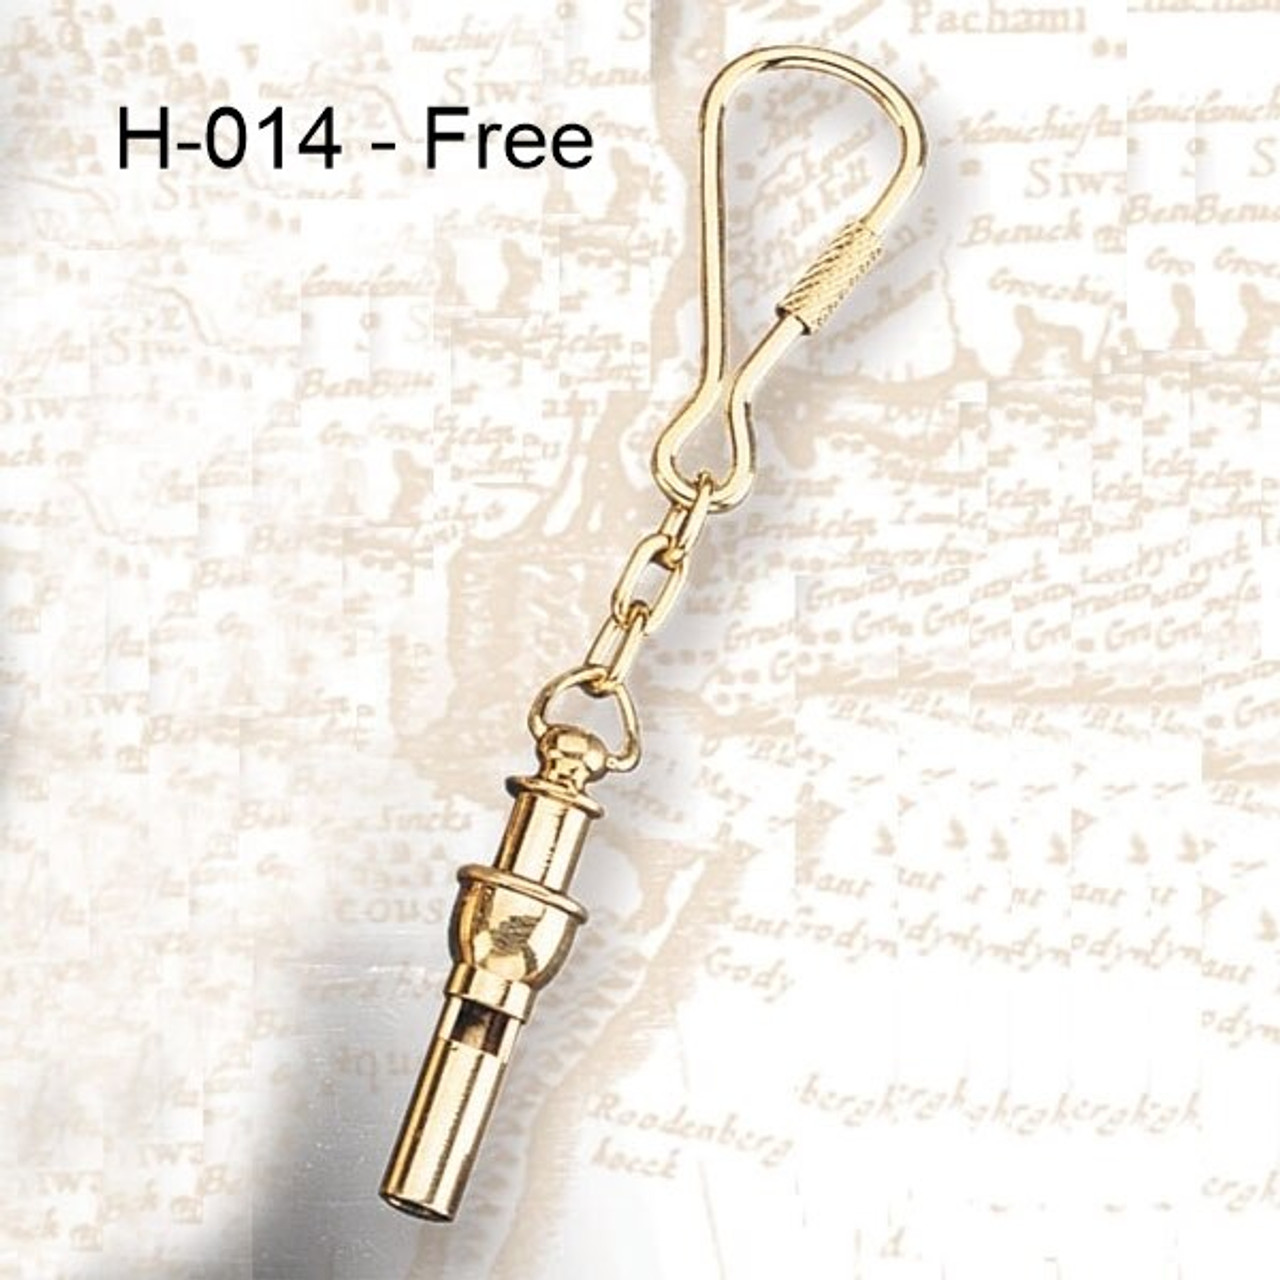 """H - 014 -  Bosun's Whistle Key Chain Option Free with Purchase of (BW-654) 2"""" Brass Pocket Compass"""